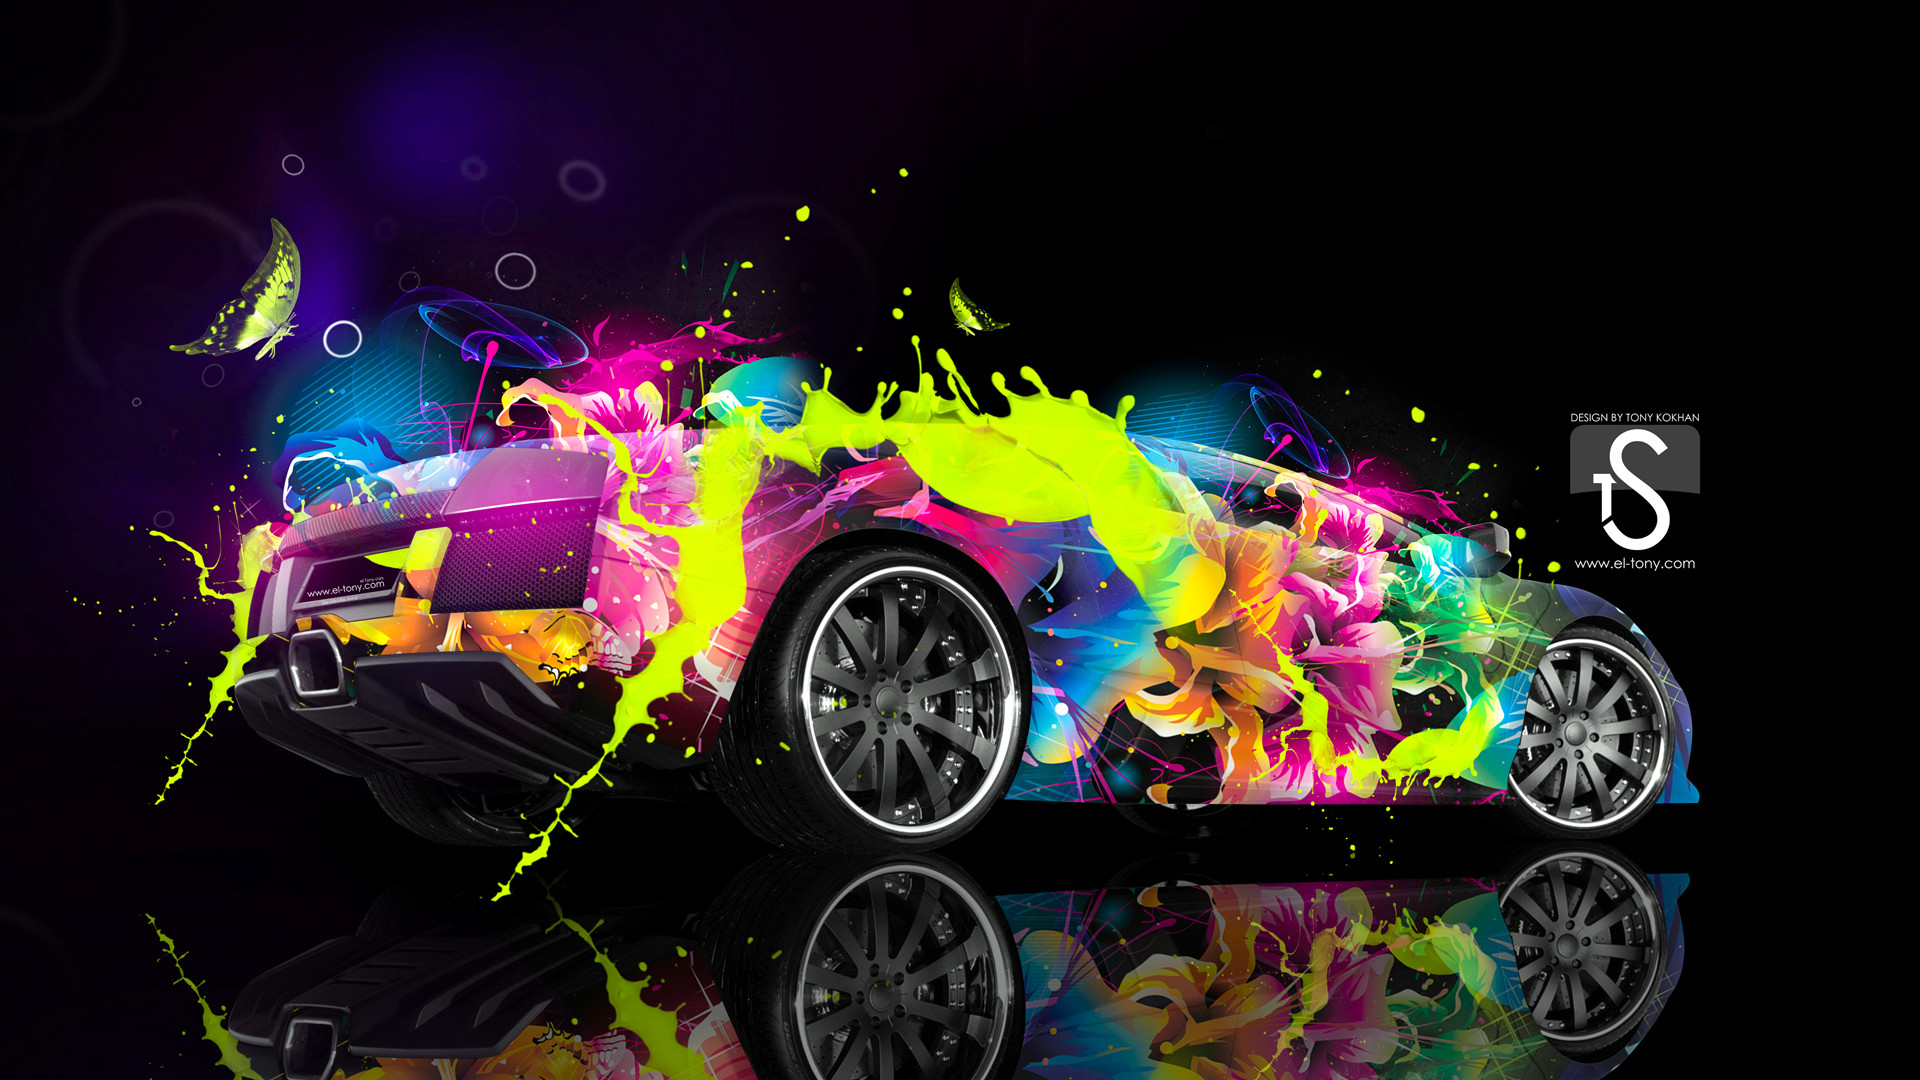 1920x1080 Download Colorful Cars Wallpaper Full HD #s2w1t5  px 1.05 MB Cars  Colorful Cars